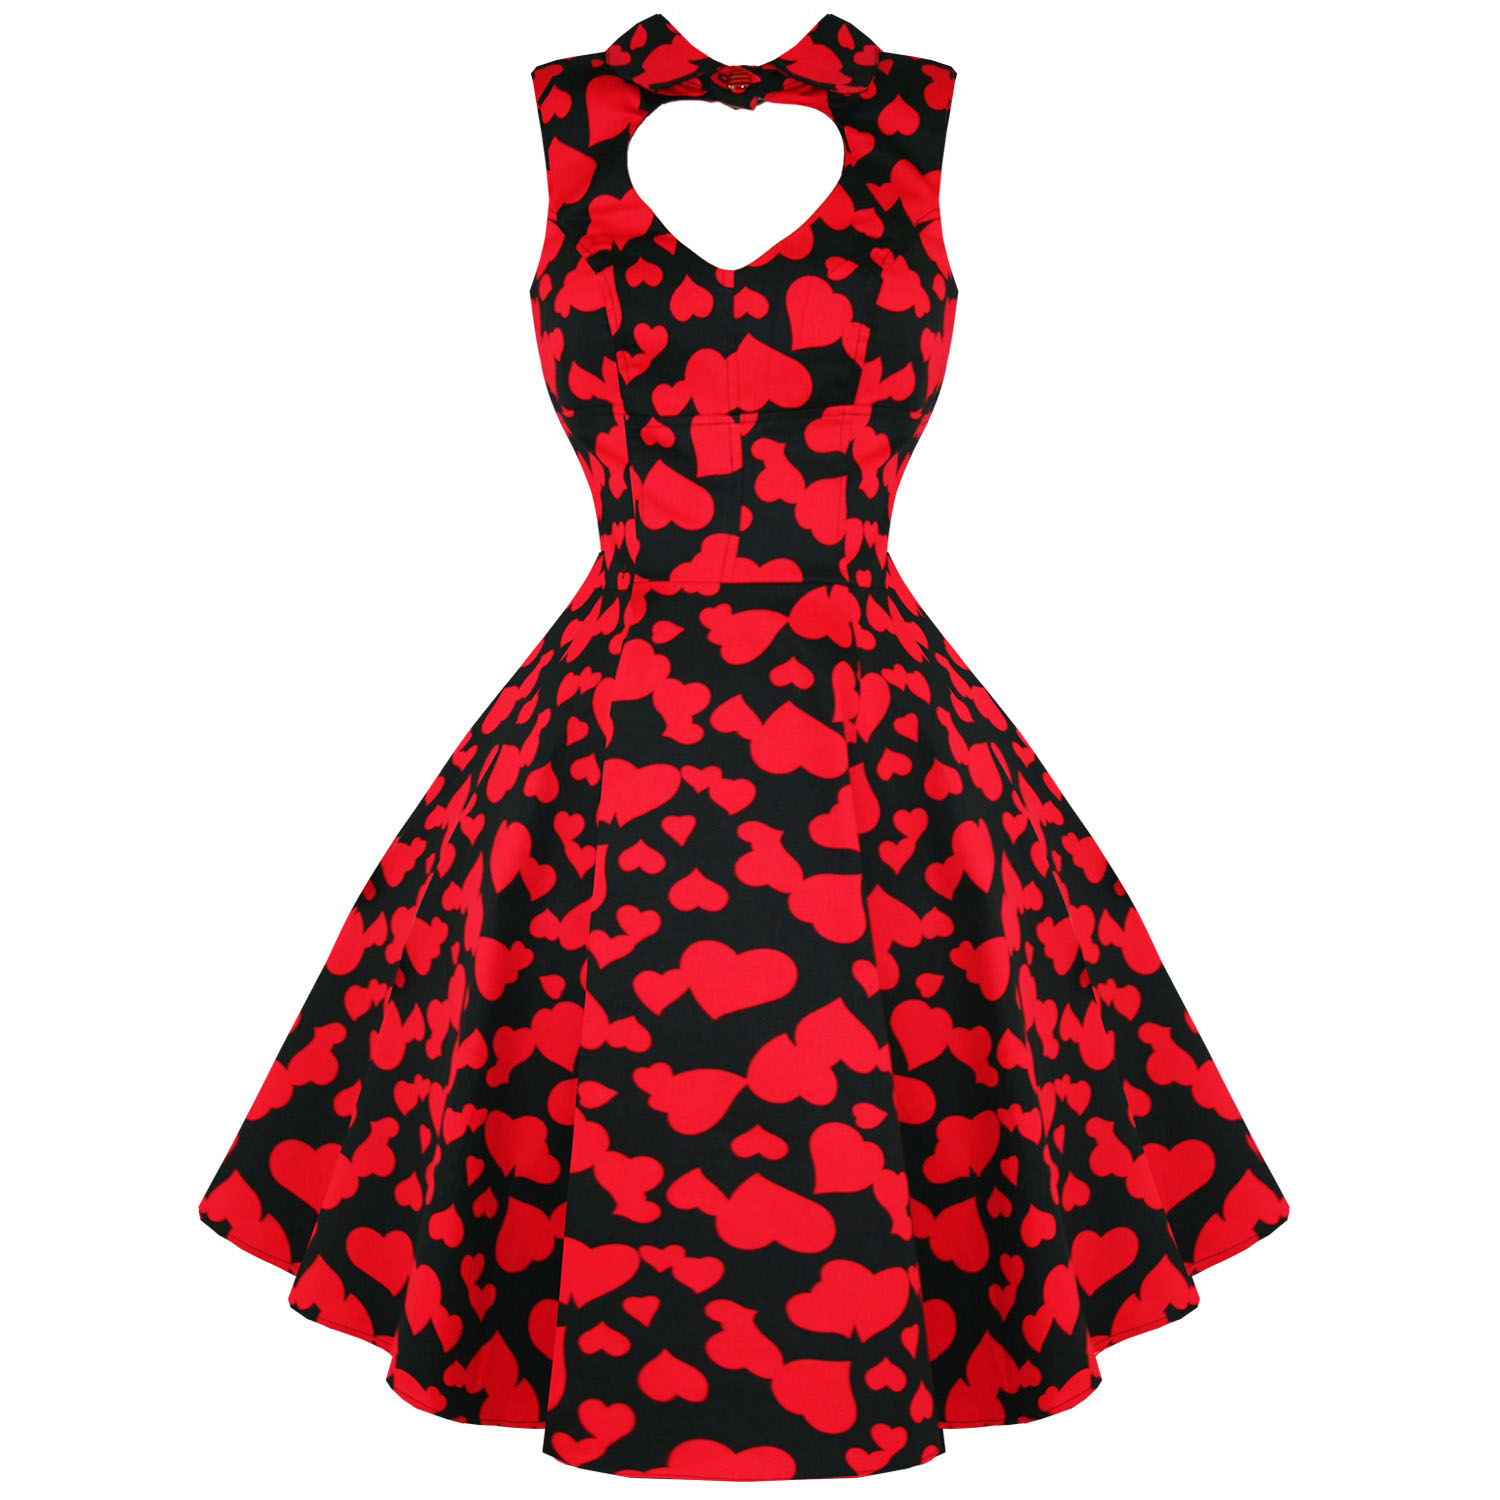 Hearts-amp-Roses-London-Red-Heart-Valentines-Vintage-50s-Party-Prom-Swing-Dress